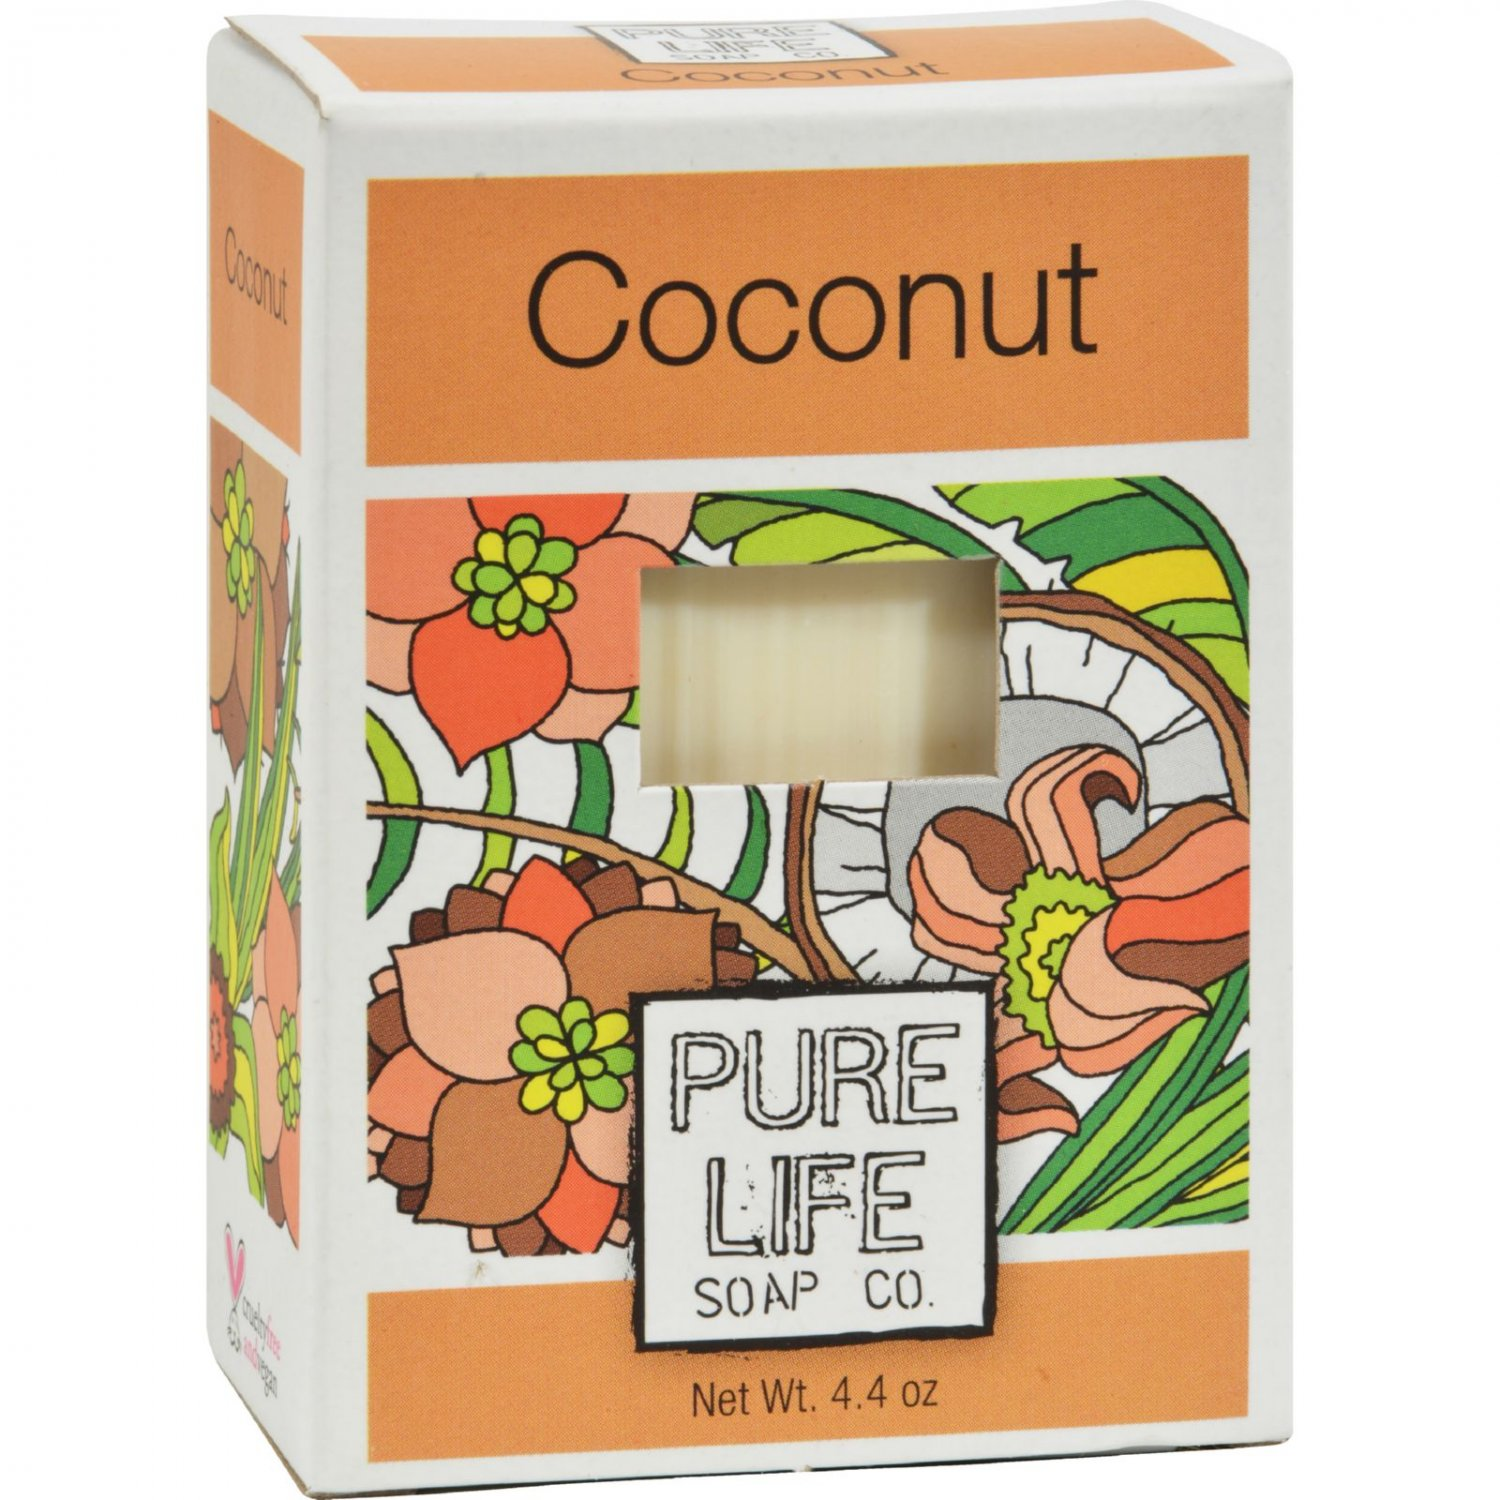 Pure Life Soap Coconut - 4.4 oz